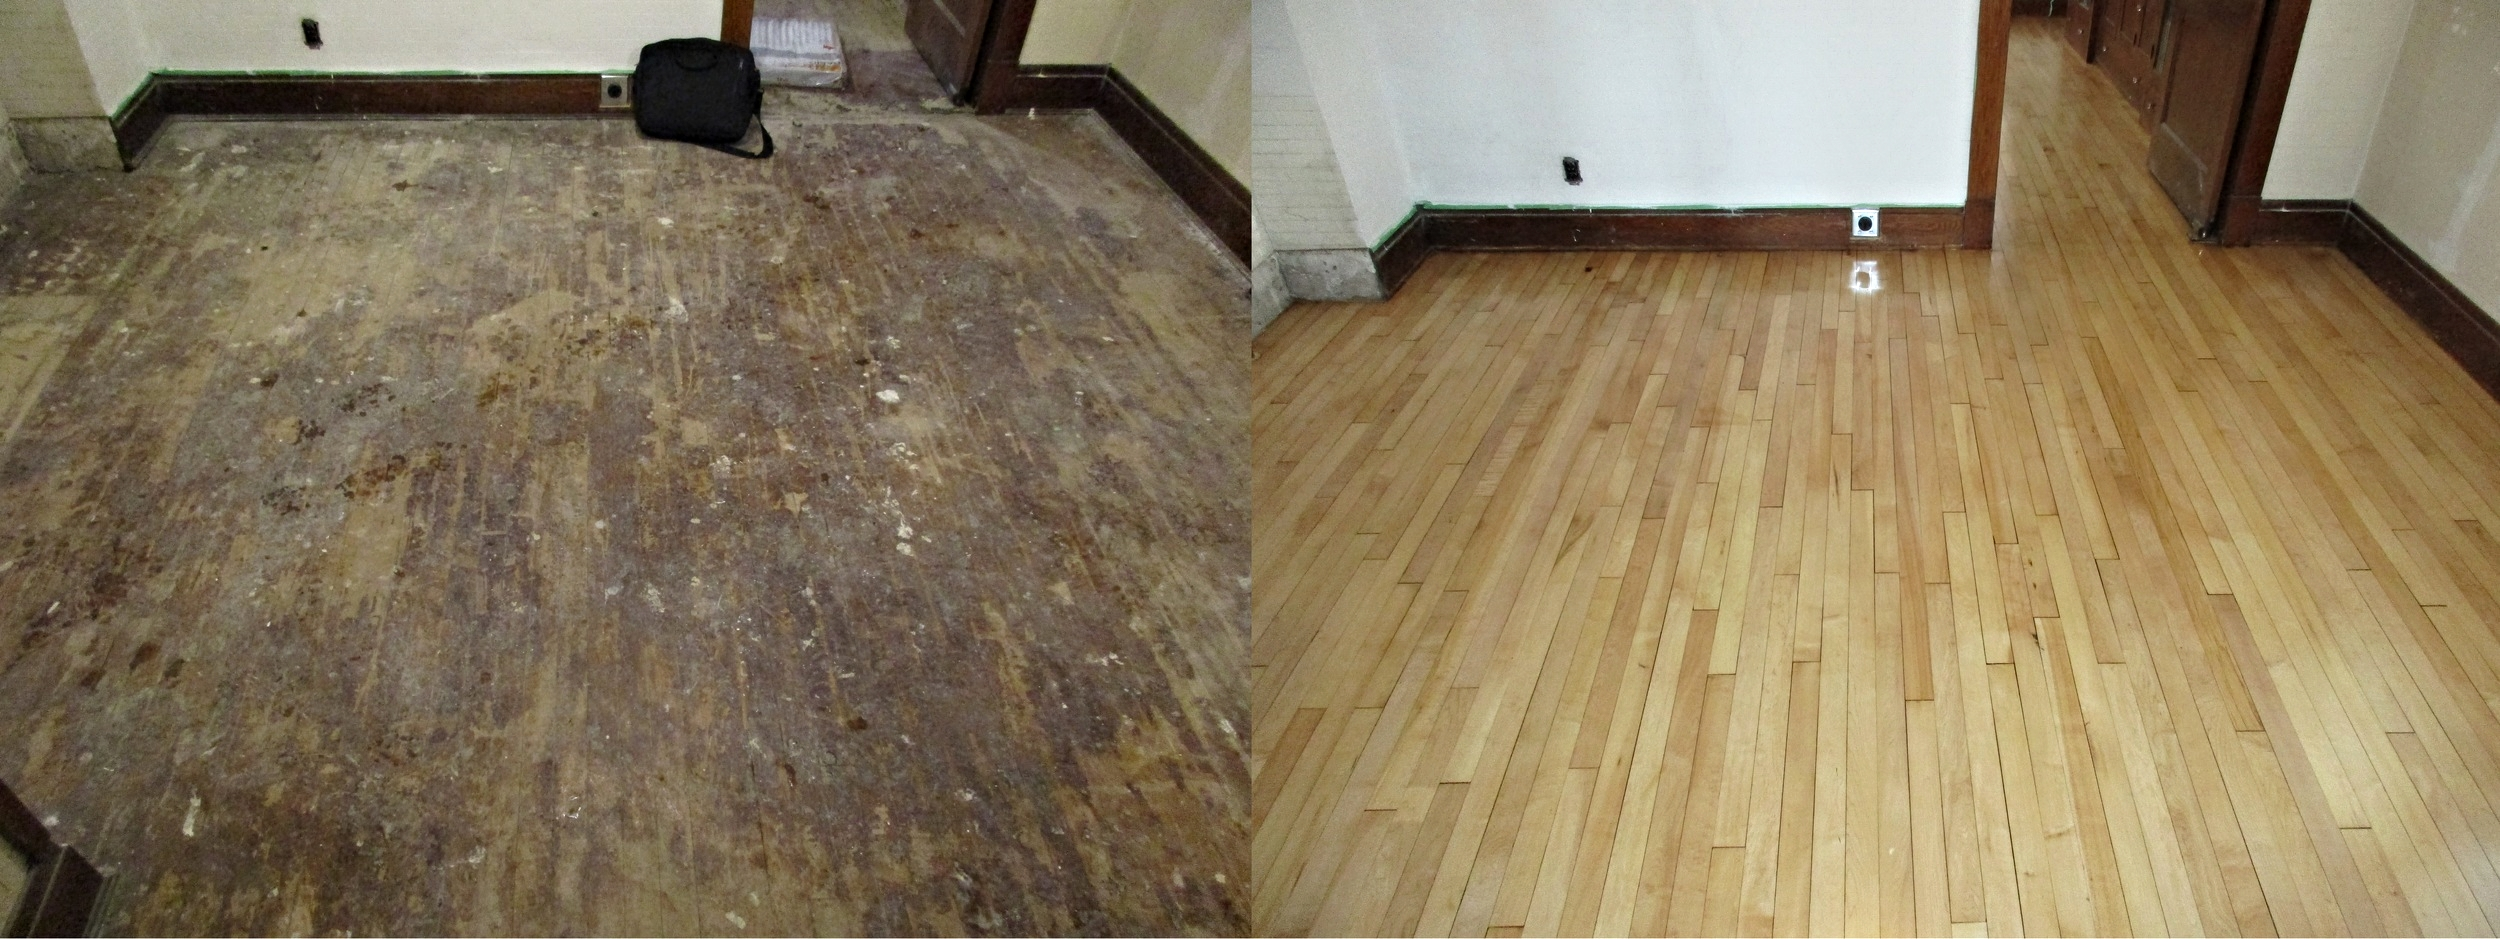 Sand and finish of an old maple floor